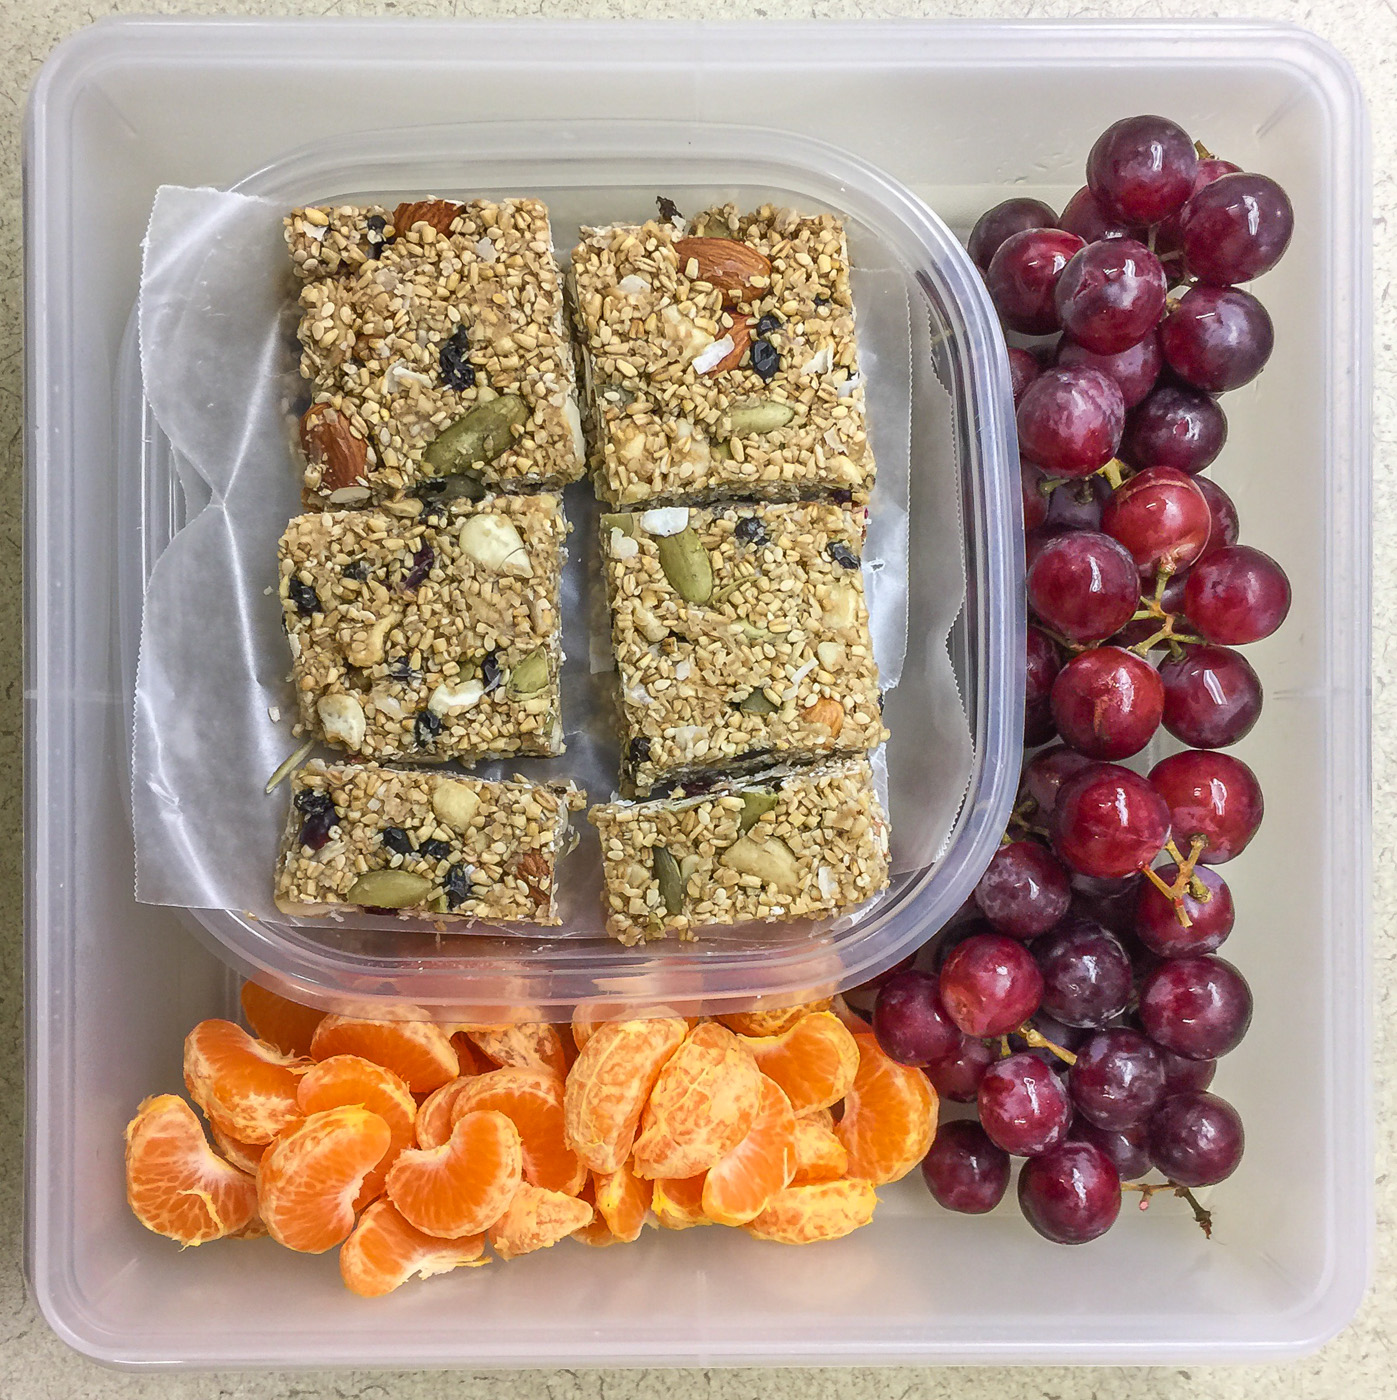 Healthy work snacks granola bars, grapes, mandarins